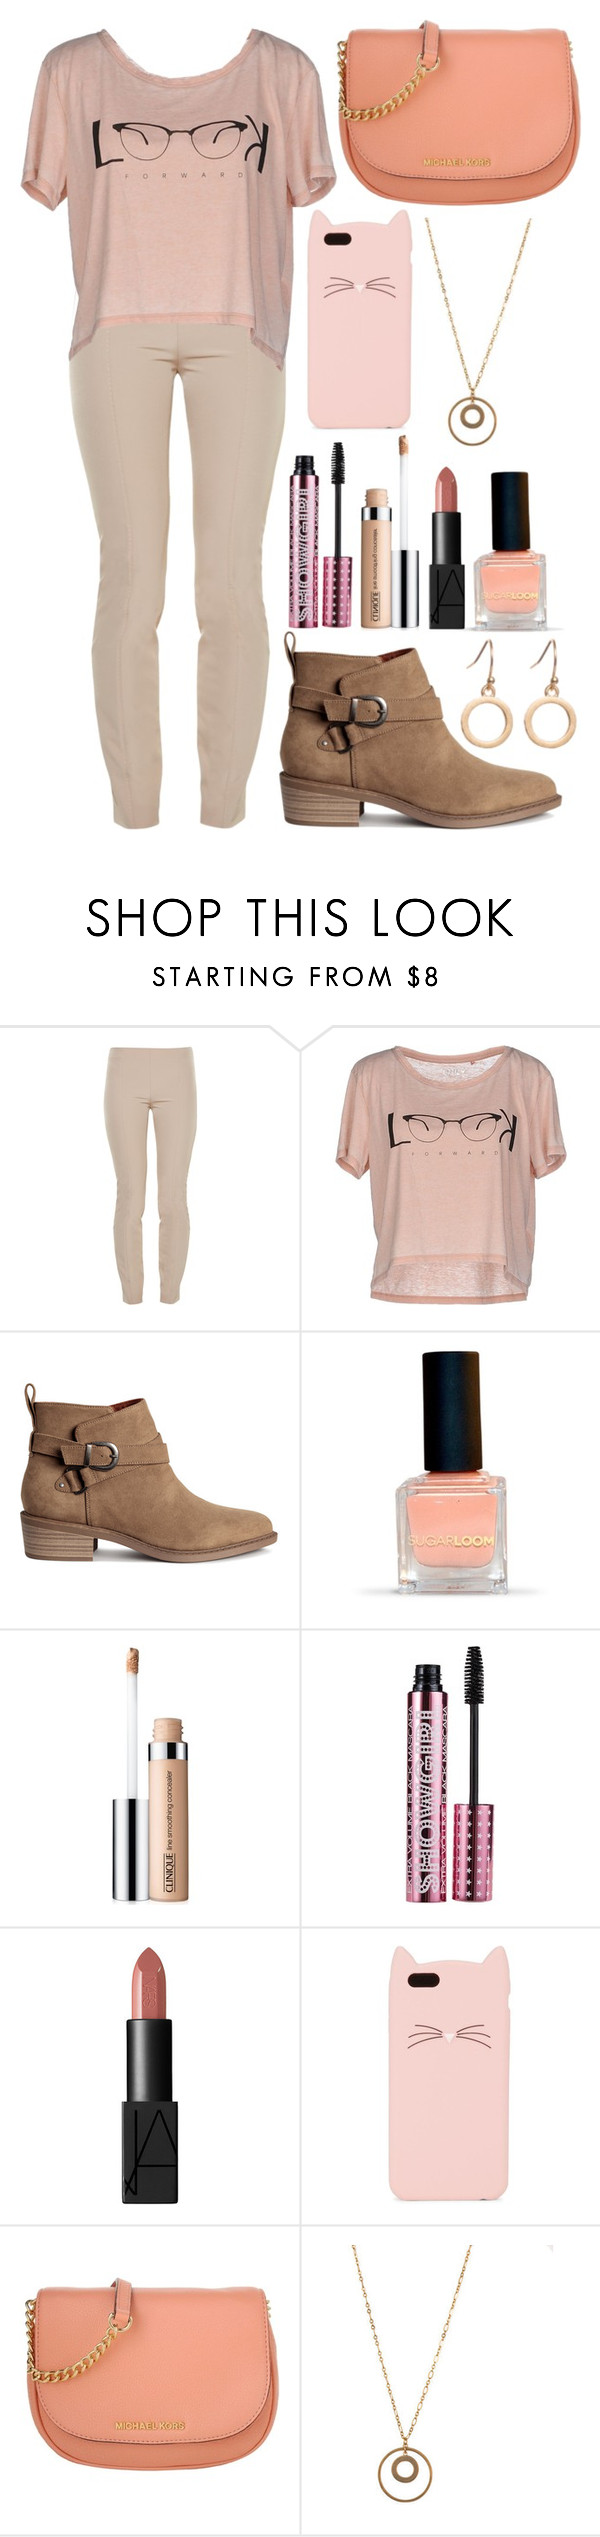 """#264"" by nattiexo ❤ liked on Polyvore featuring The Row, ONLY, Clinique, Barry M, NARS Cosmetics, Kate Spade and Michael Kors"